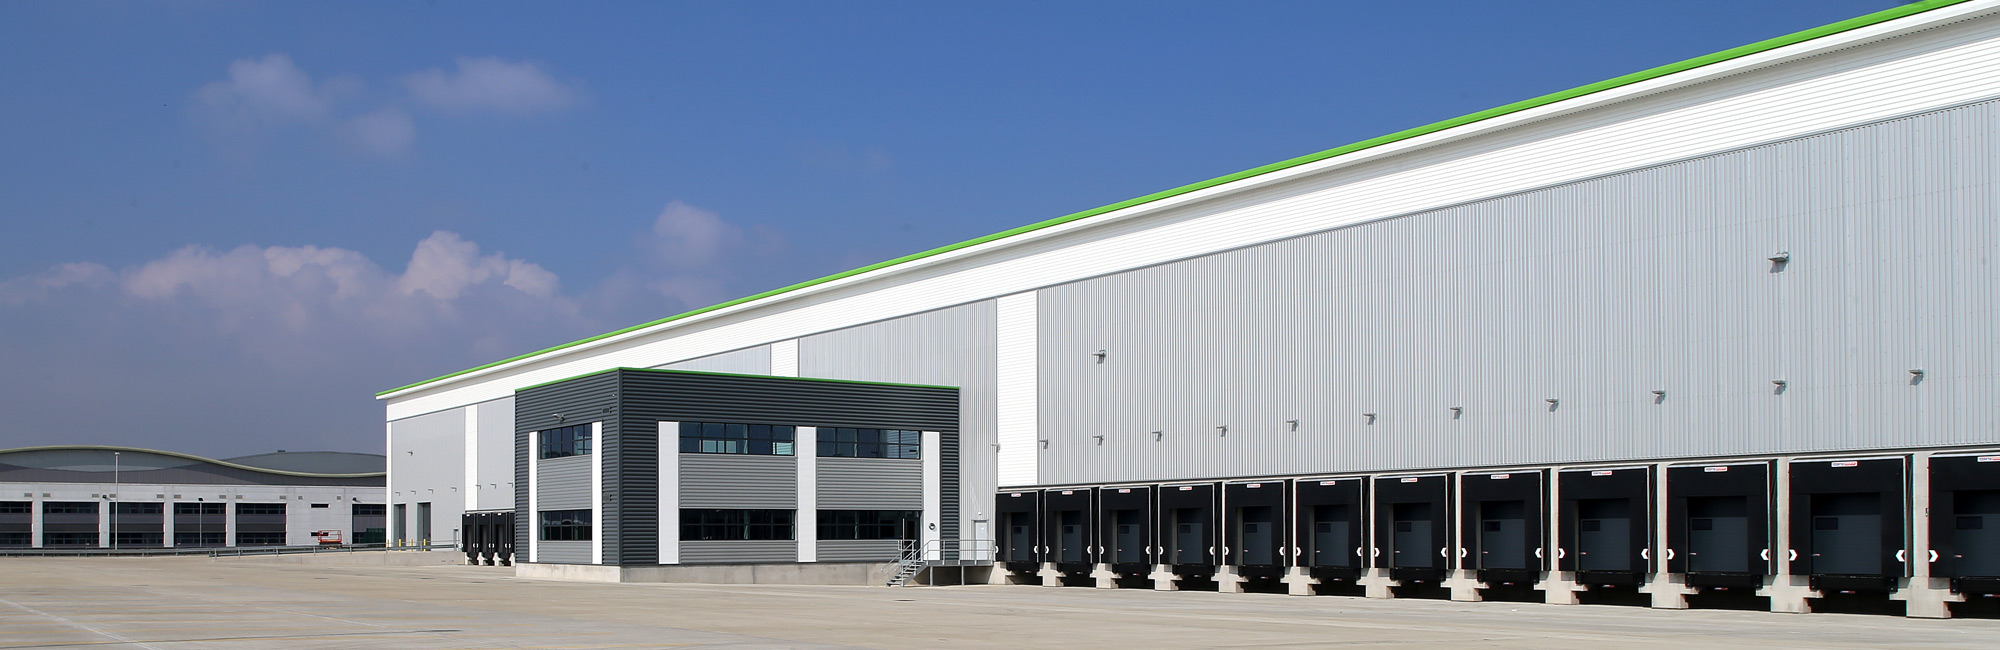 Goodman further develops Andover Business Park as key supply chain location with up to 362,000 sq ft of industrial and distribution space +